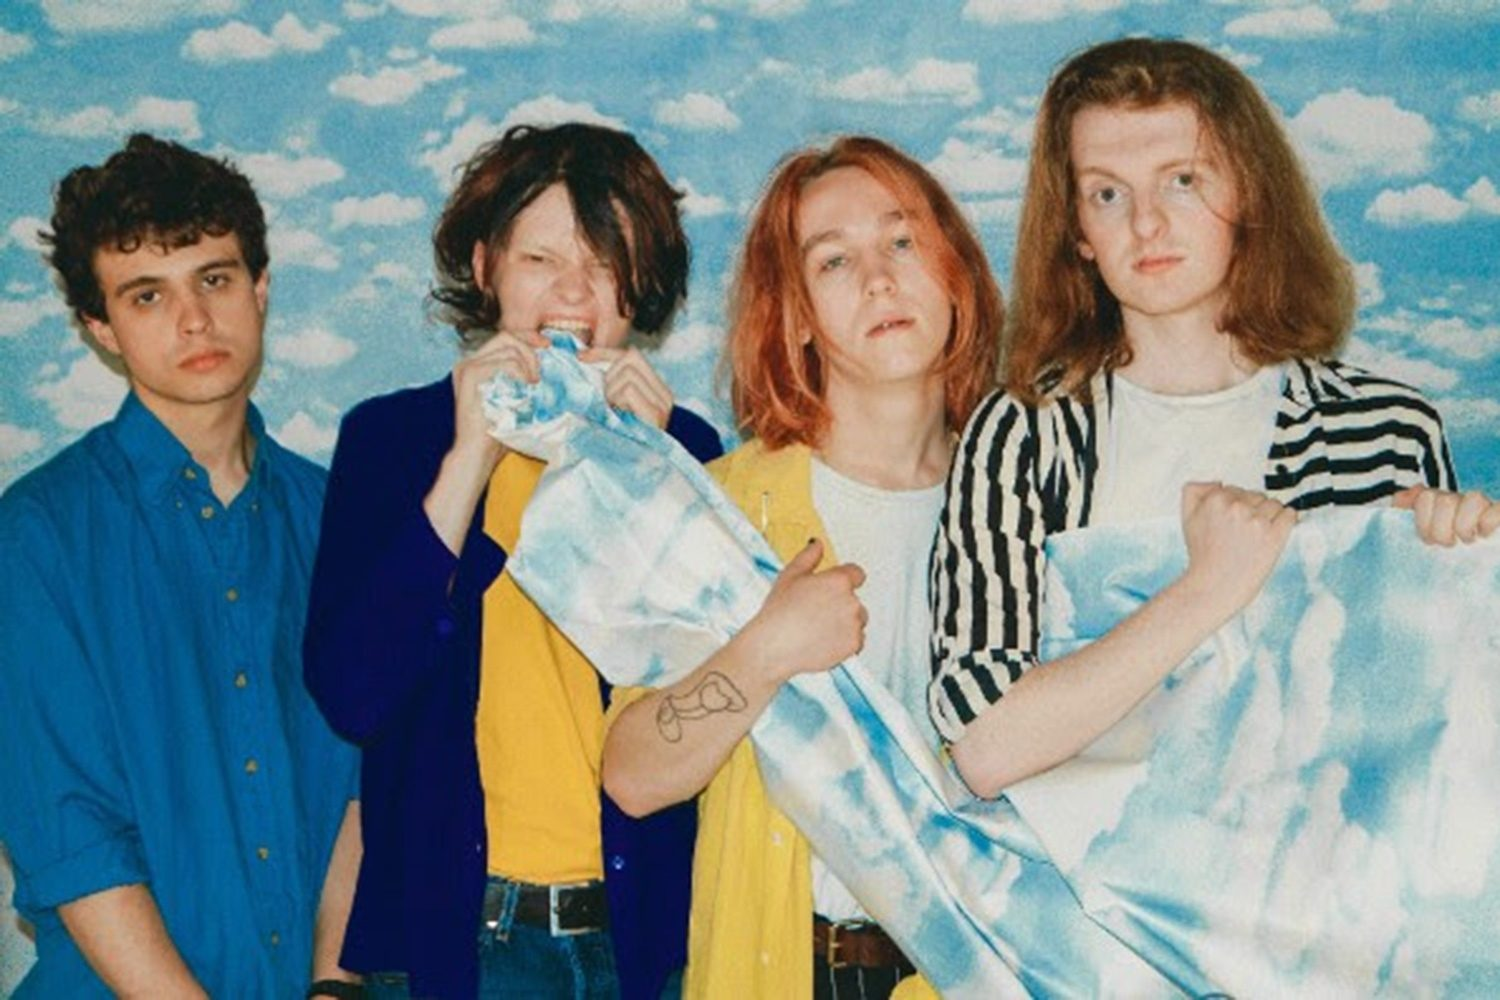 King Nun have released their debut EP, 'I Have Love'